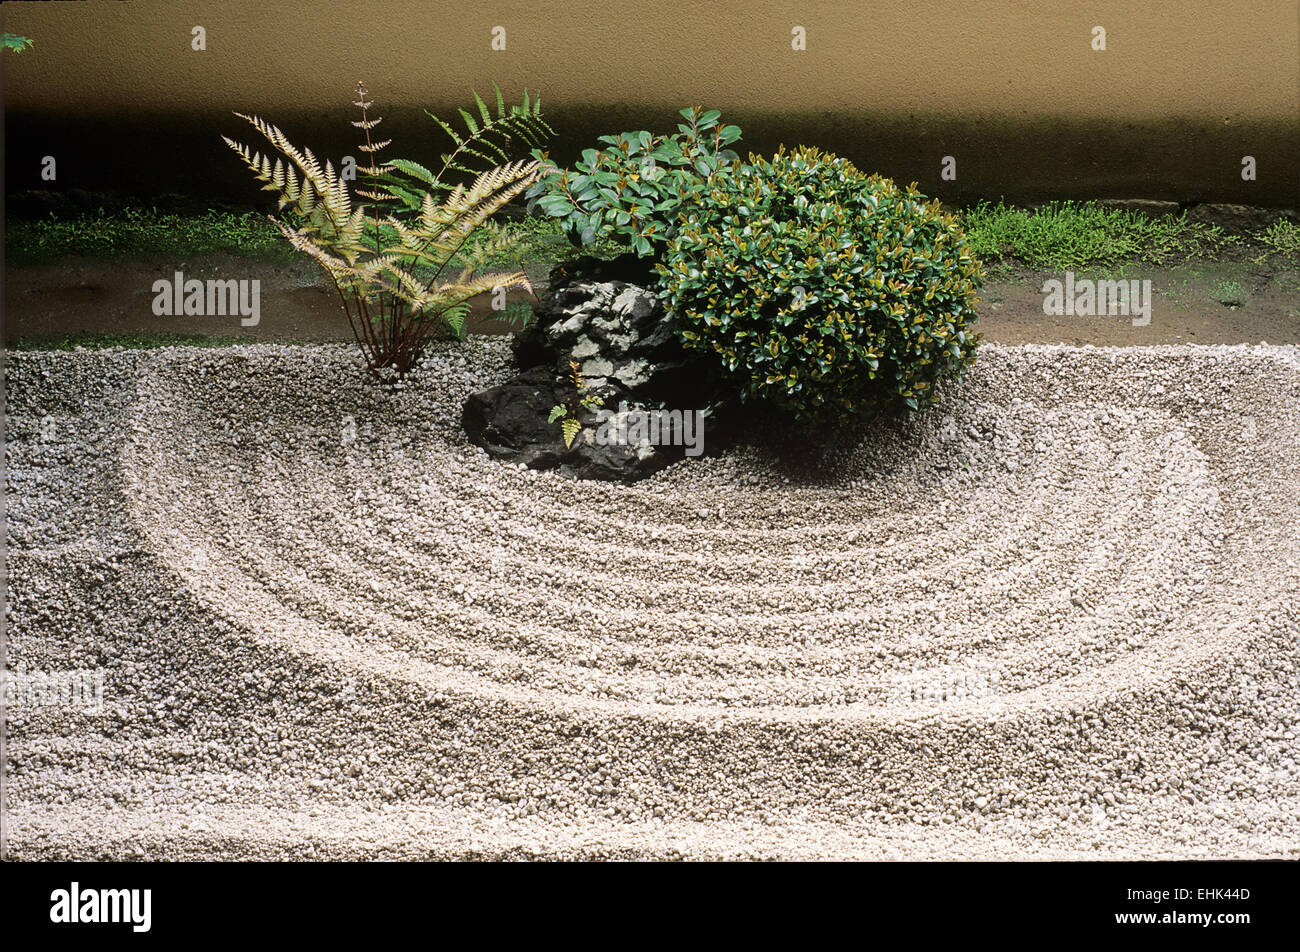 The Ryogen-in is a subtemple of Daitokuji and is one of several Zen gardens that were founded in the 15th century. - Stock Image